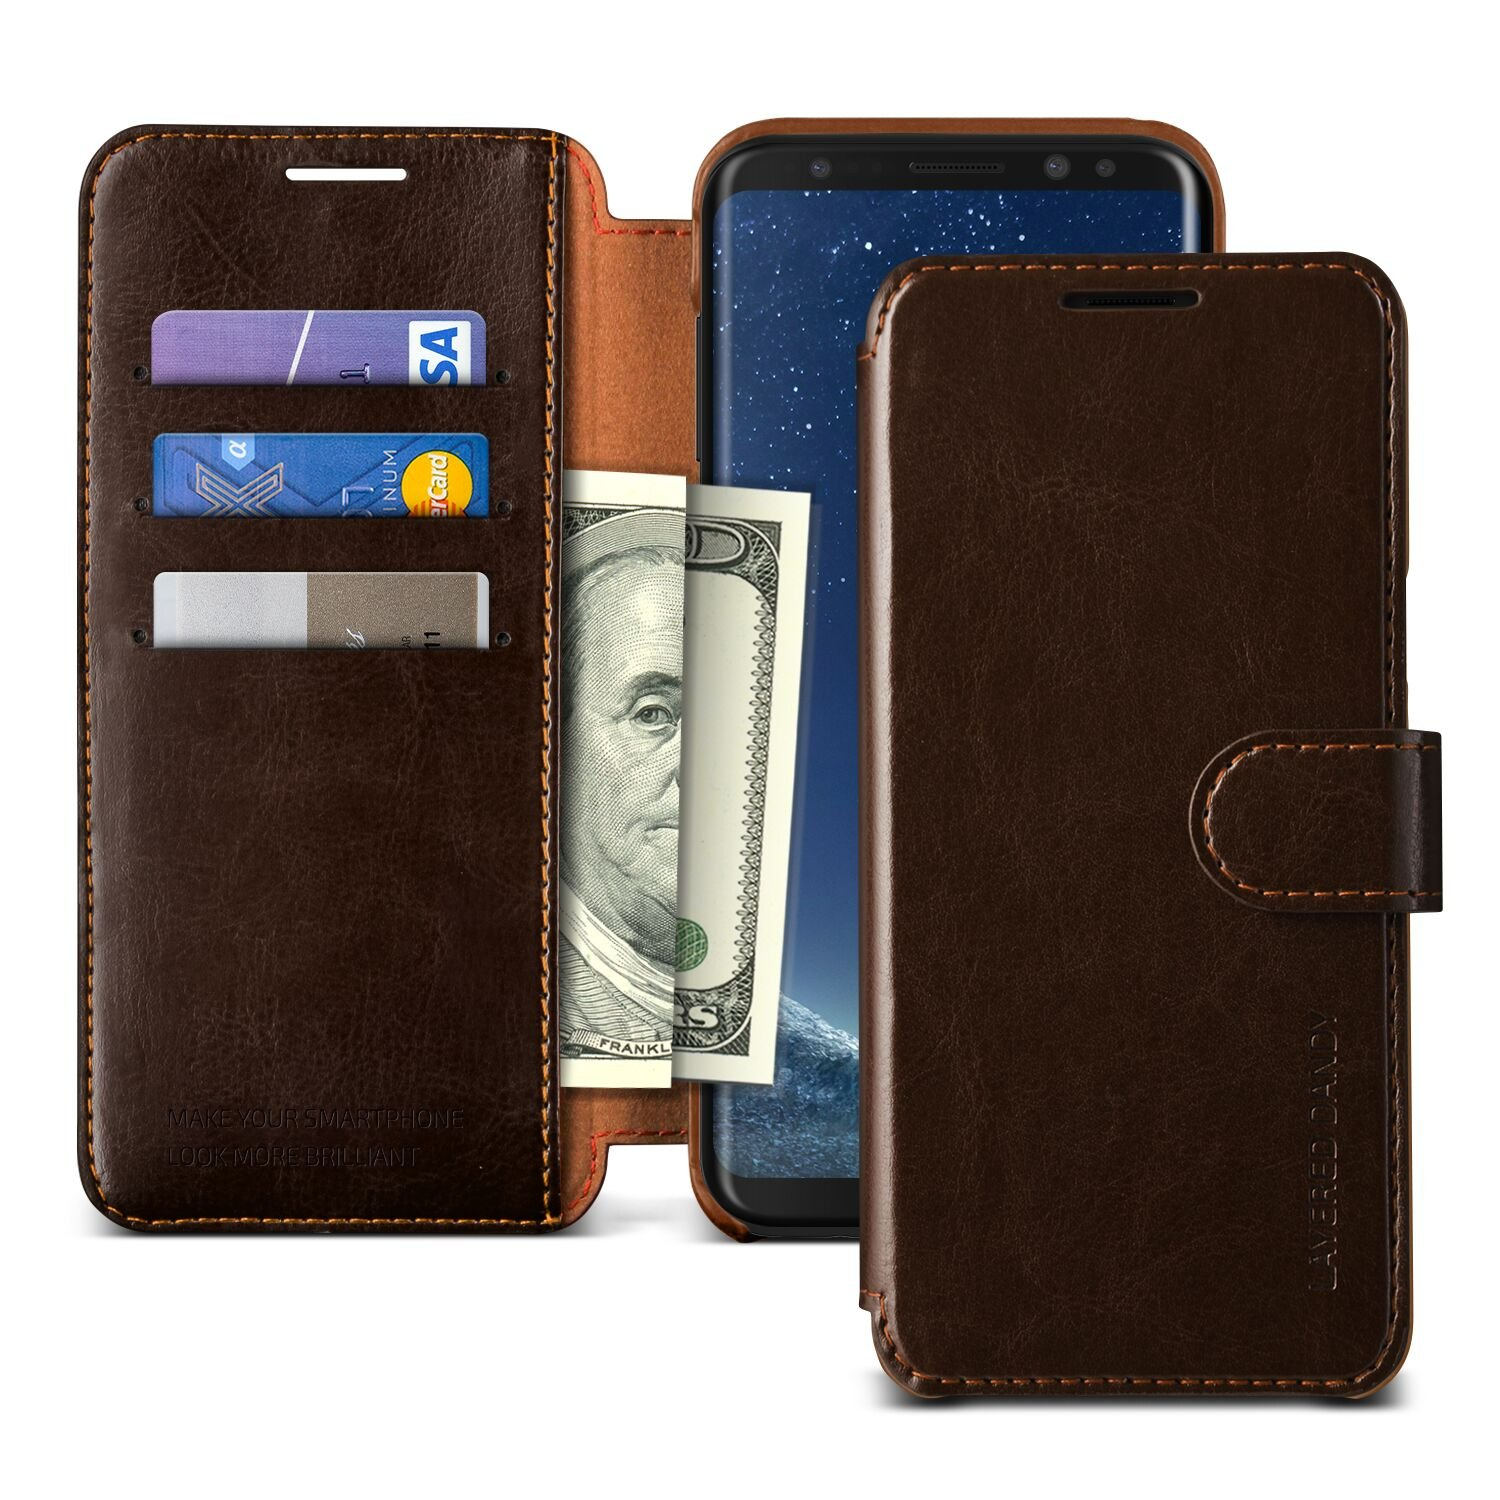 VRS DESIGN Note 8 Wallet Case, Drop Protection Cover Classy Slim Premium PU Leather Wallet [Dark Brown] ID Credit Card Slot Holder for Samsung Galaxy Note 8 Case [Layered Dandy]